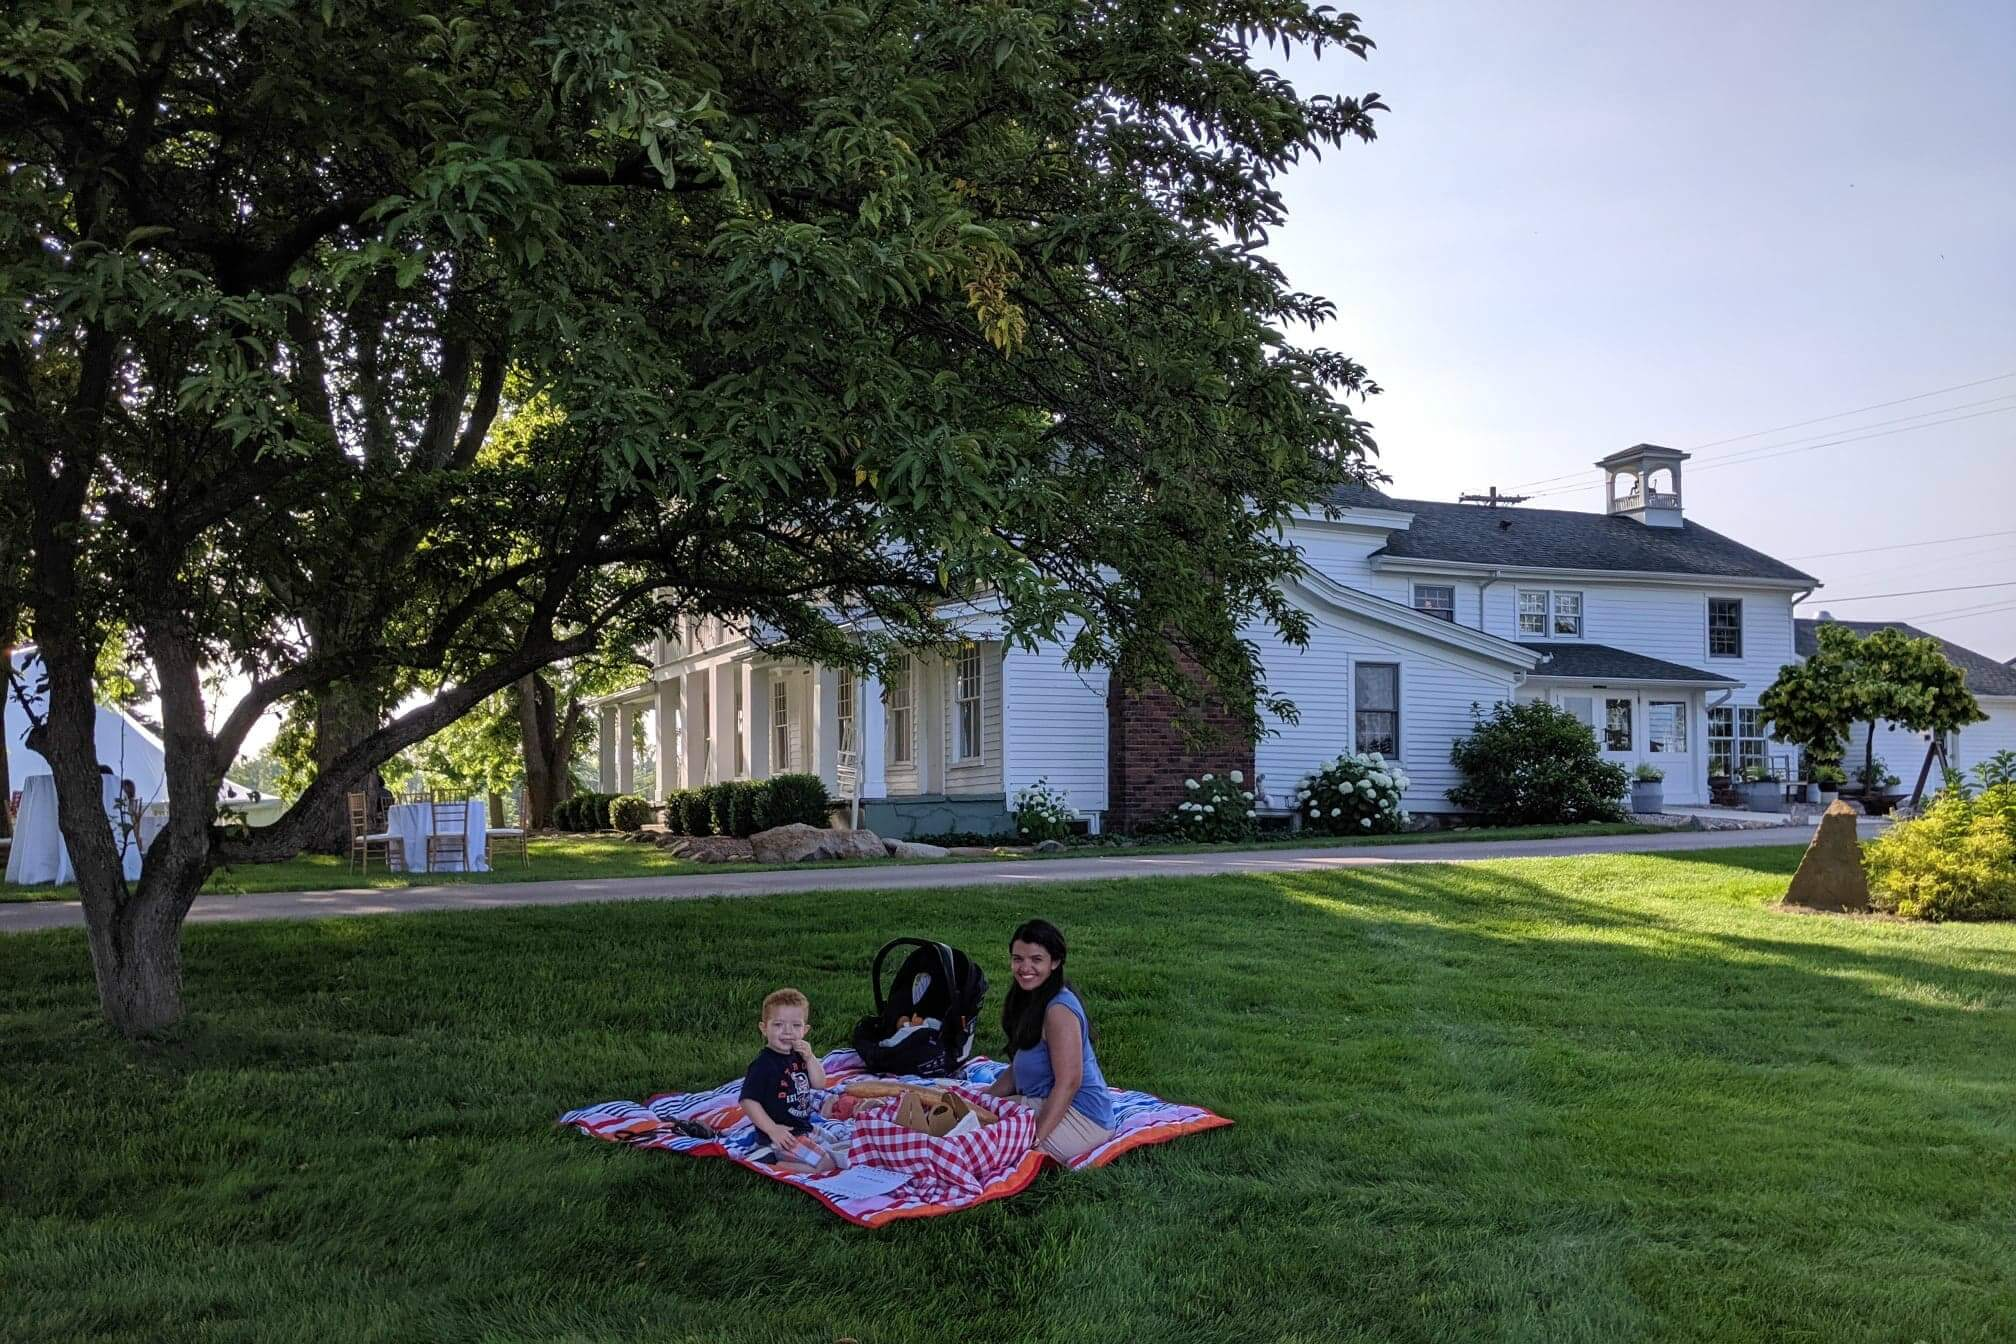 4 Fun Places to Picnic in Metro Detroit